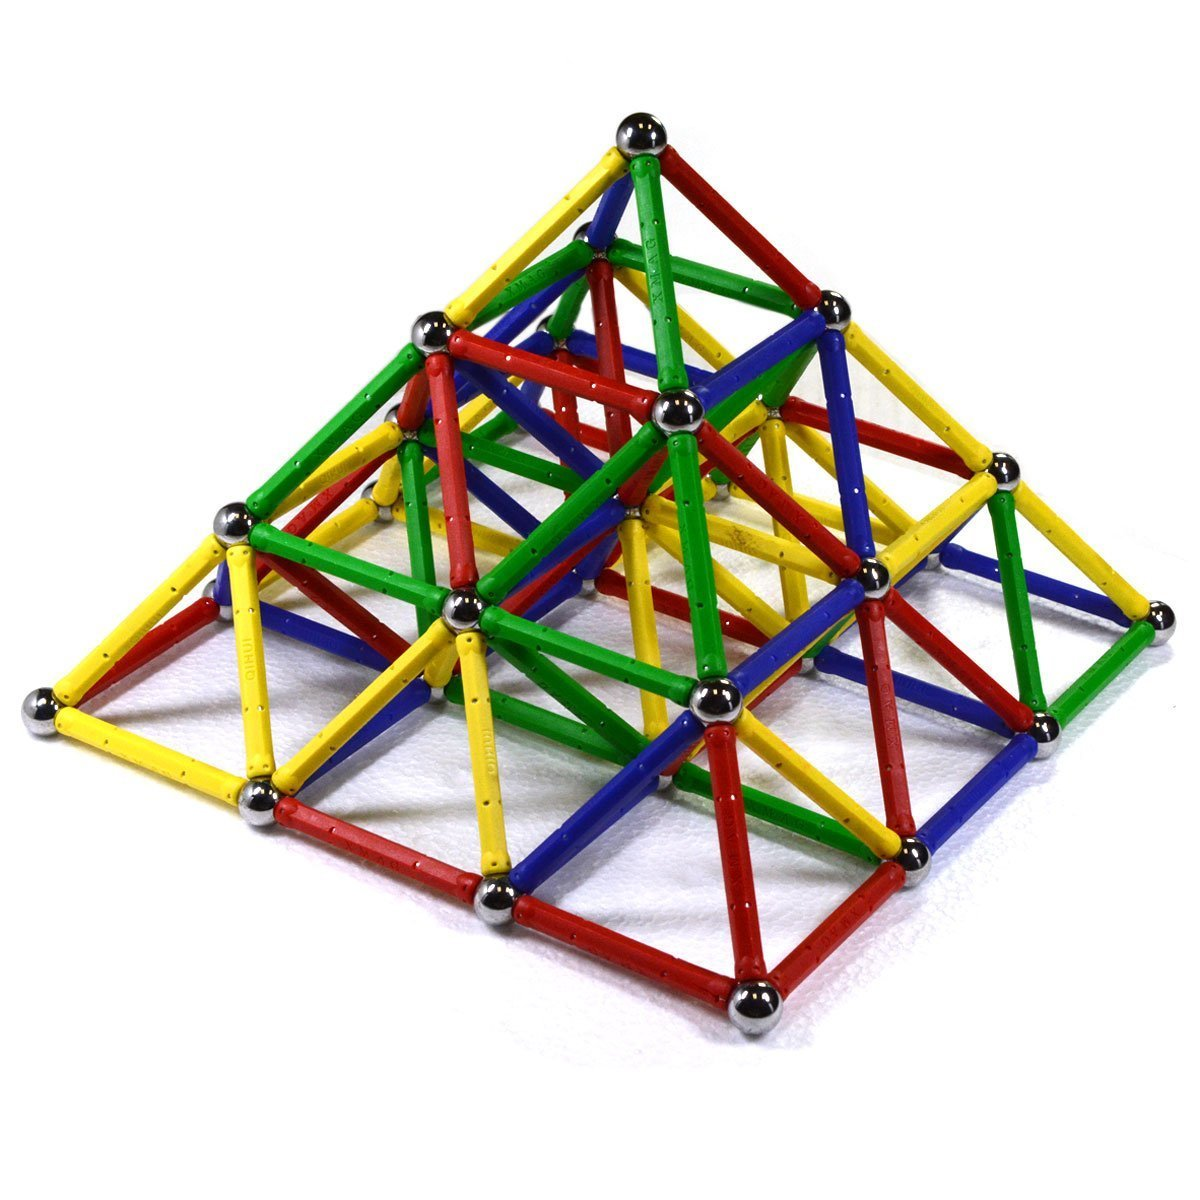 CMS Magnetics 156 PC Magnetic Building Set - Magnetic Brain Training Set for Kids and Adults Review